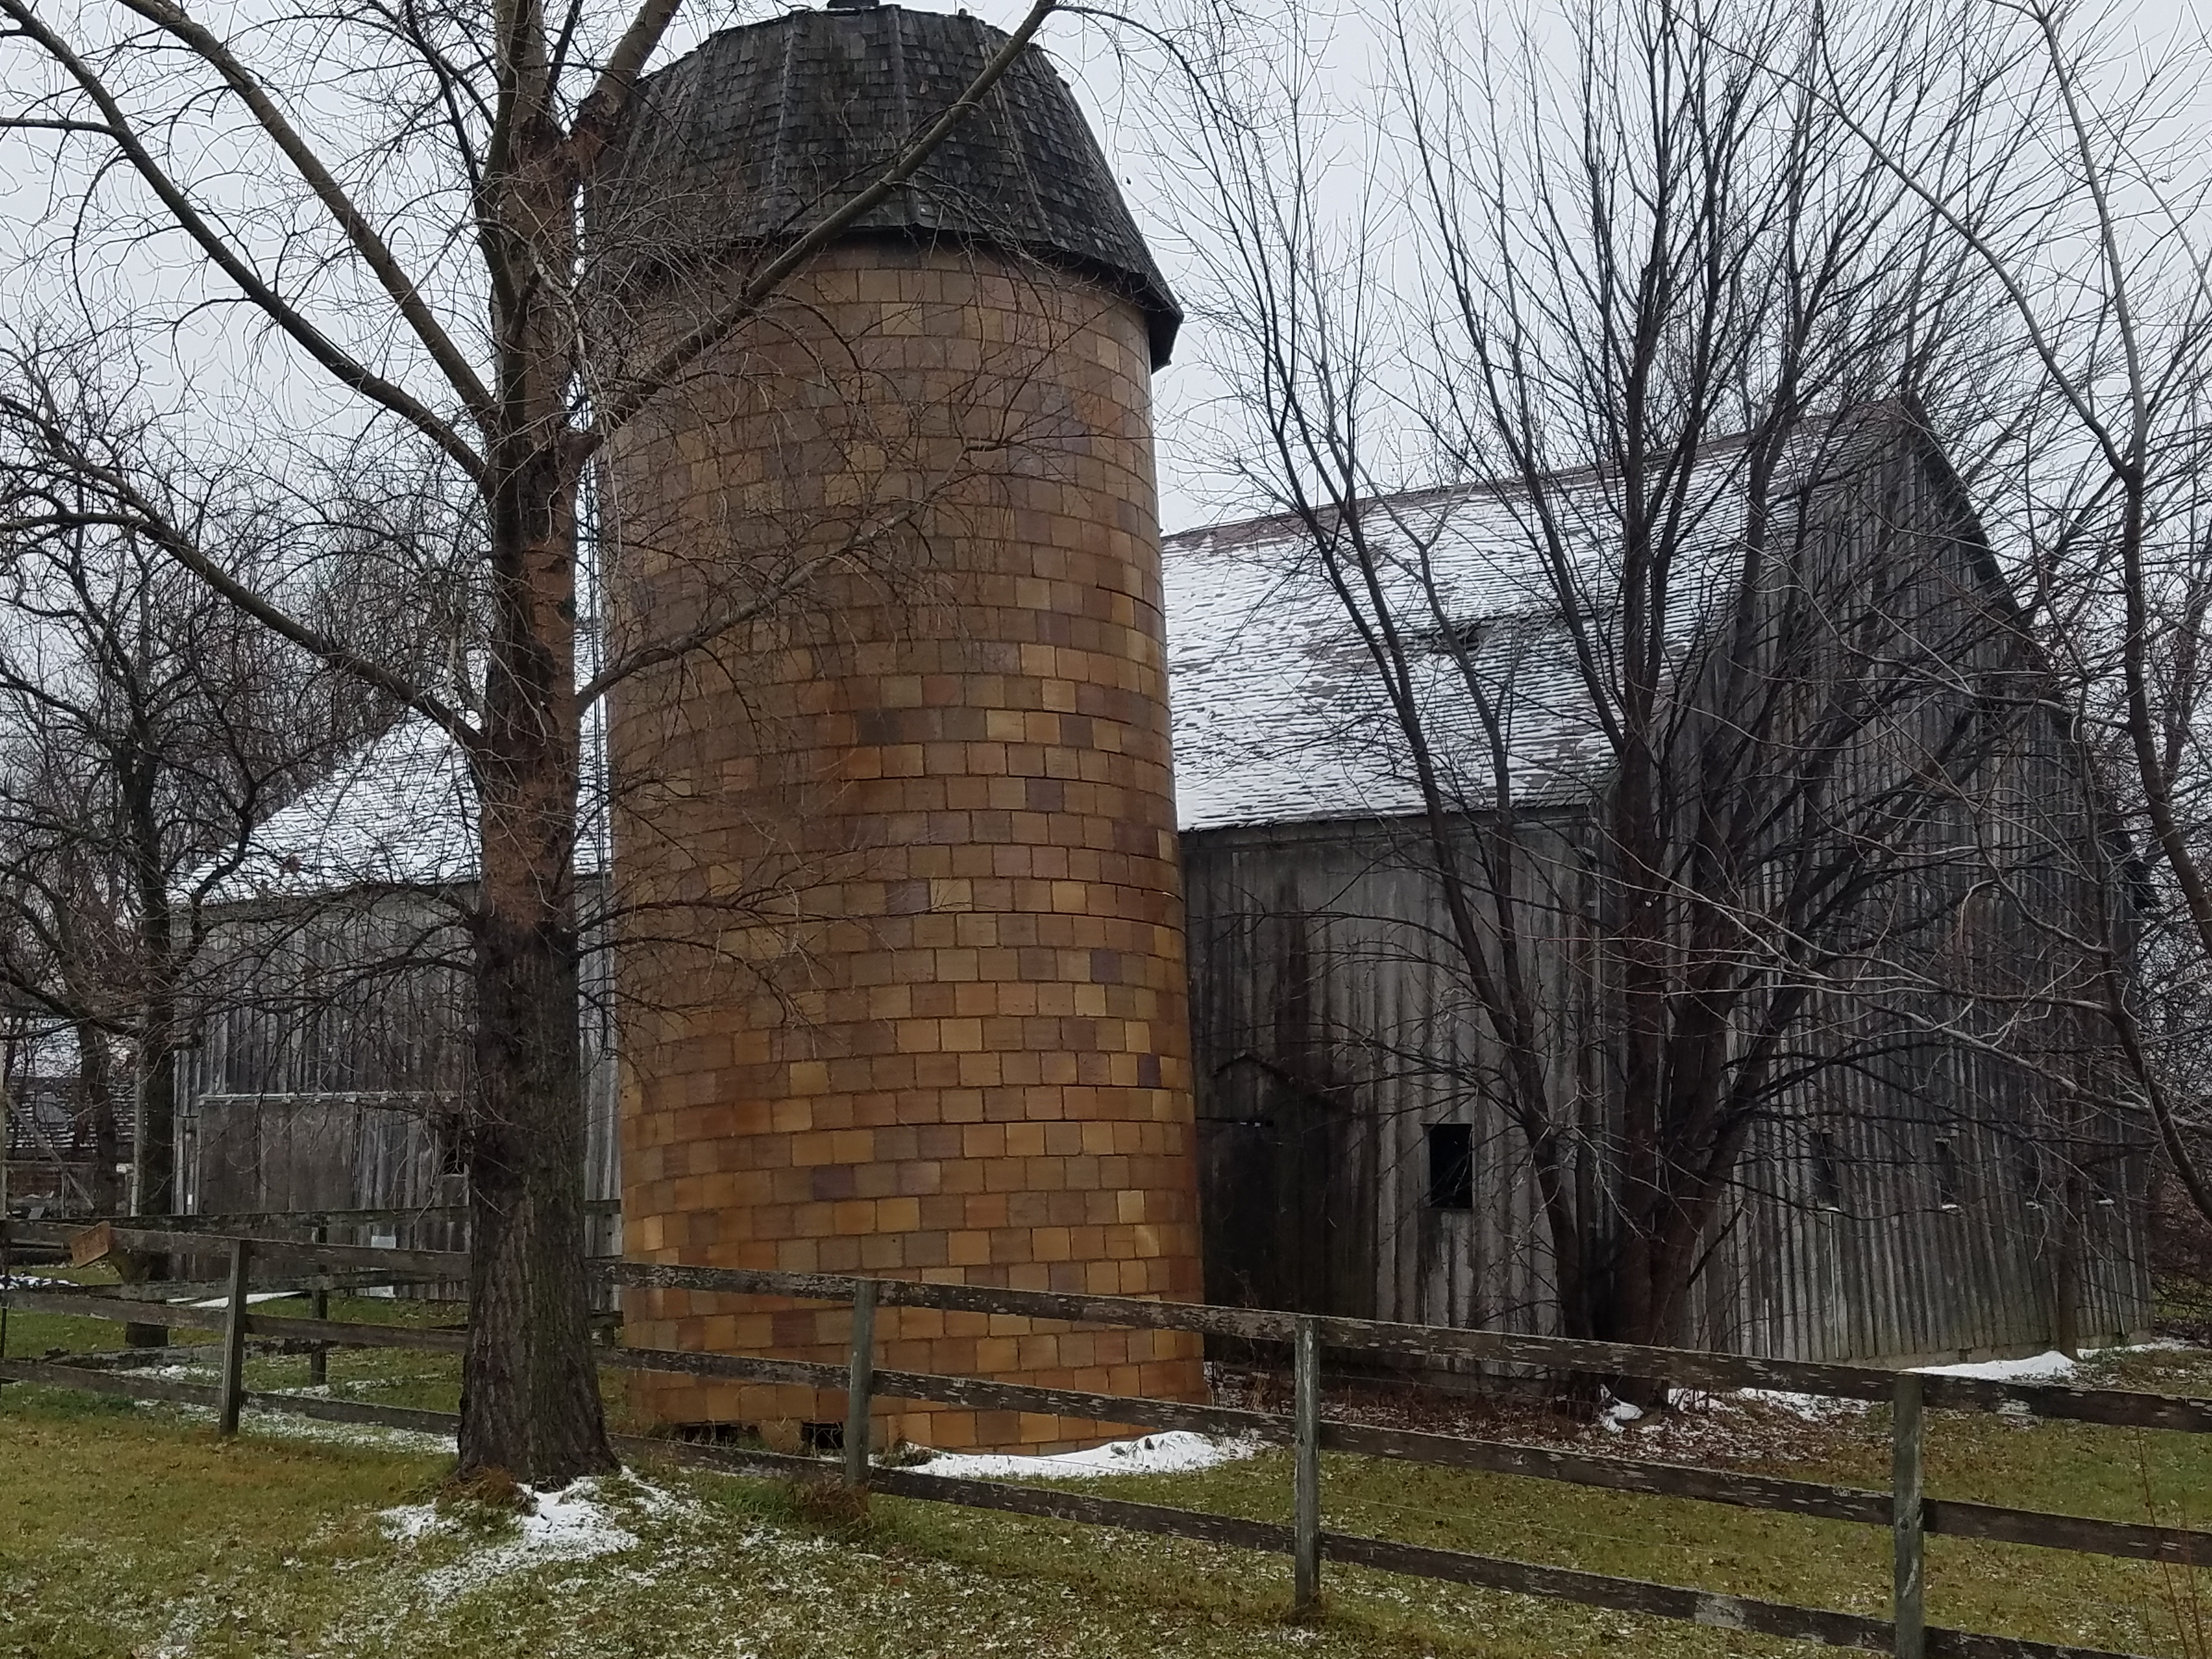 barn-with-a-dusting-of-snow-339.jpg